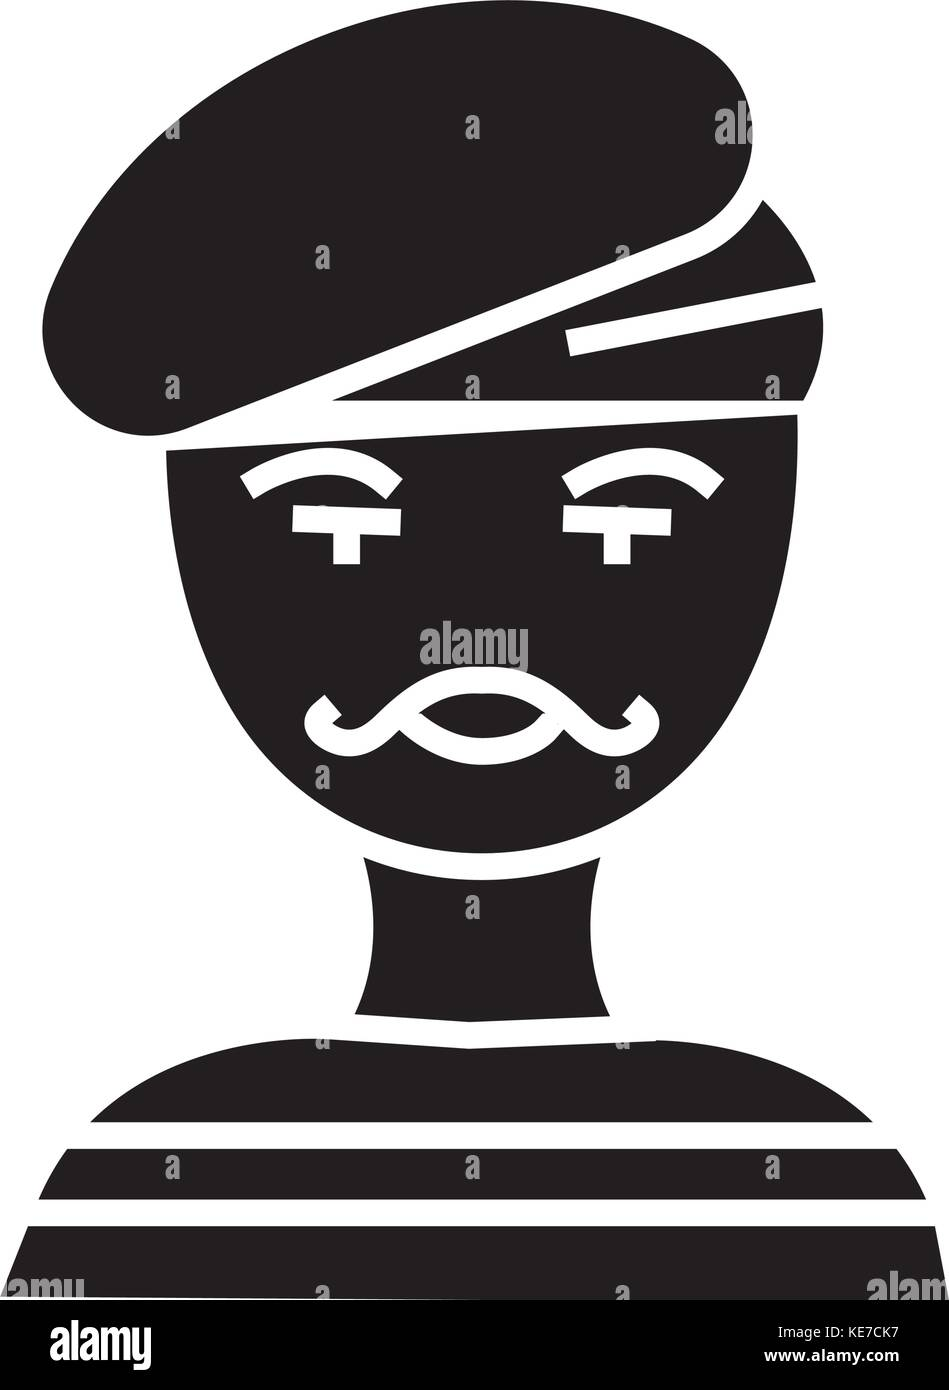 french man - artist - mime icon, vector illustration, black sign on isolated background - Stock Image